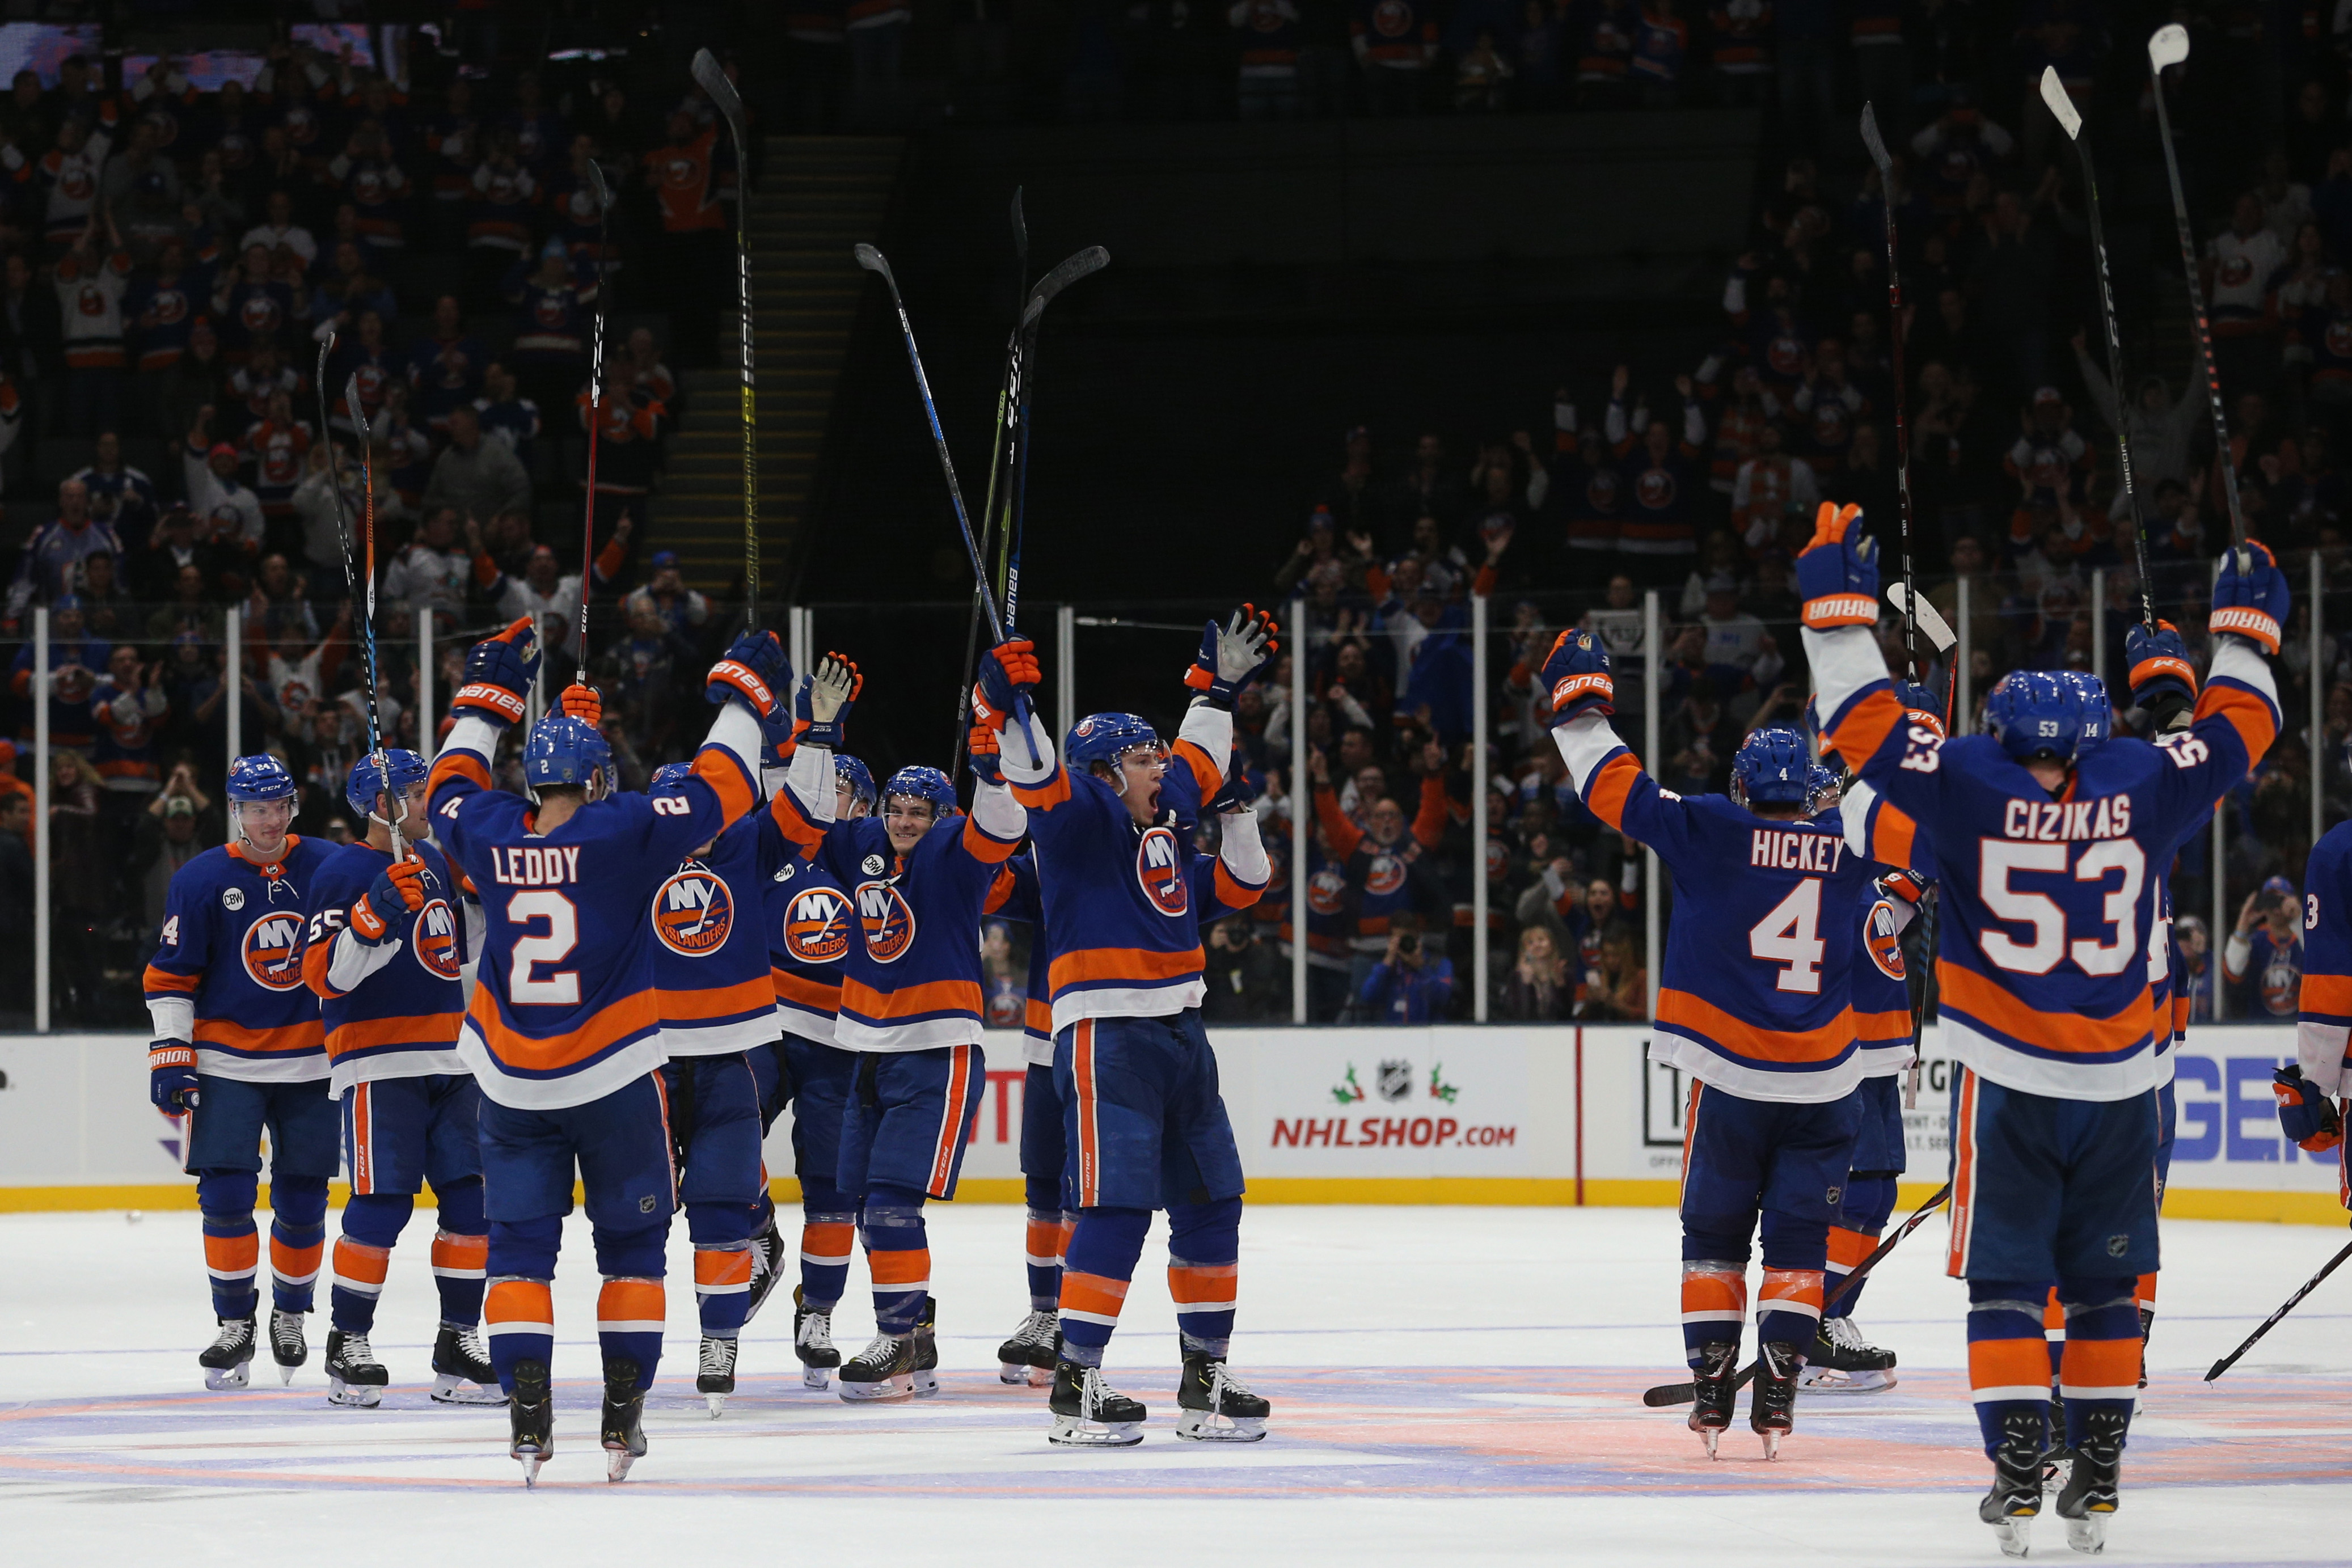 Dec 1, 2018; Uniondale, NY, USA; The New York Islanders acknowledge their fans after defeating the Columbus Blue Jackets at Nassau Veterans Memorial Coliseum. Mandatory Credit: Brad Penner-USA TODAY Sports